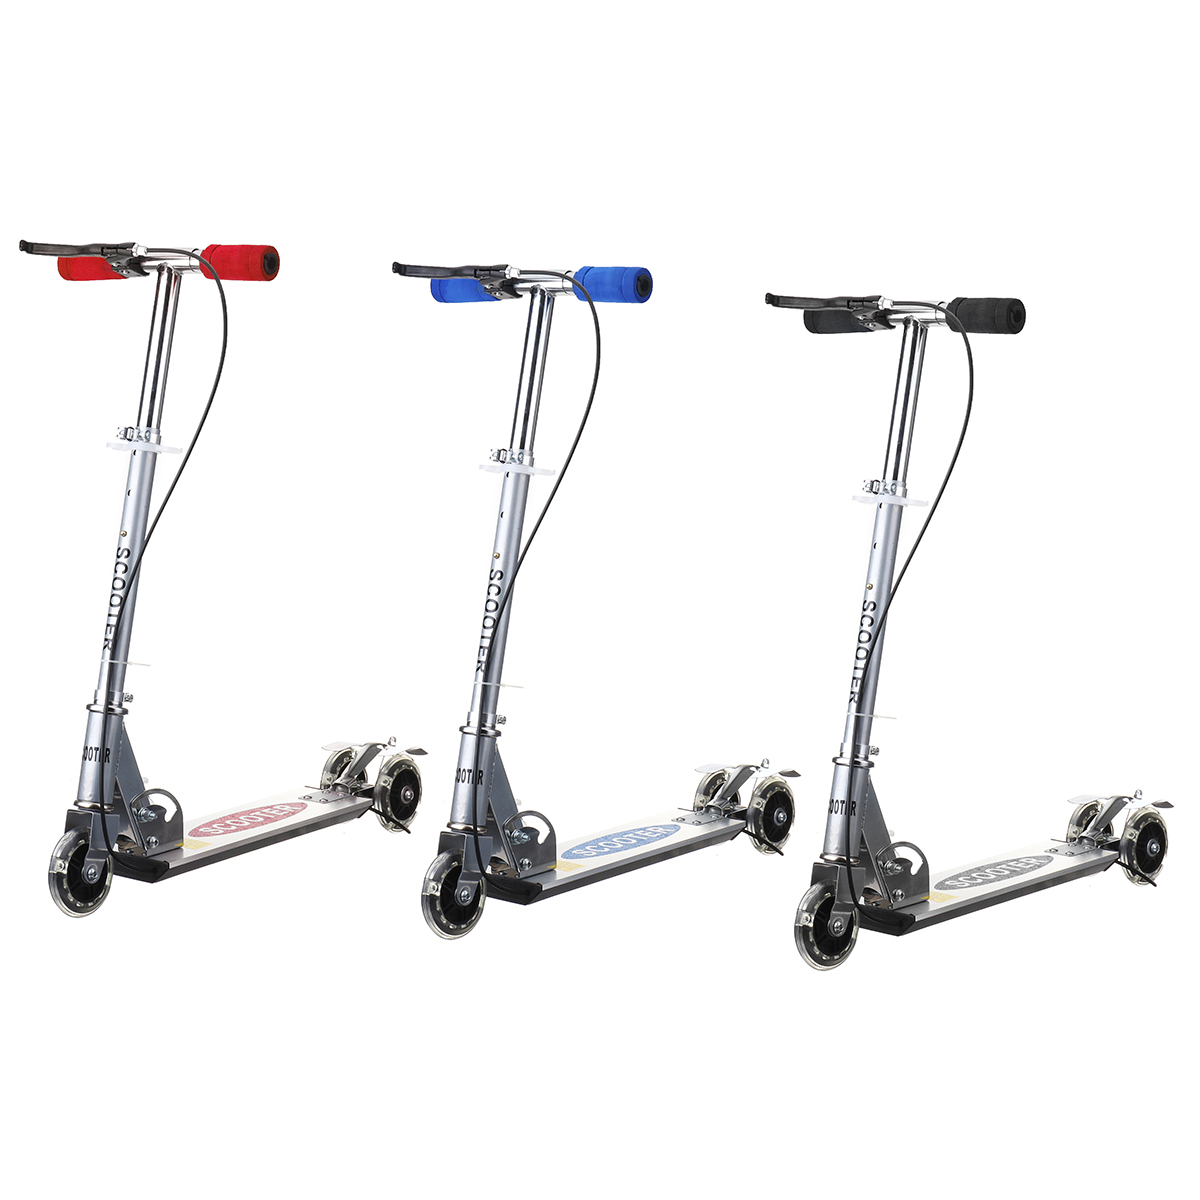 Height Adjustable Kick Scooter for Kids with 3 Wheels 8